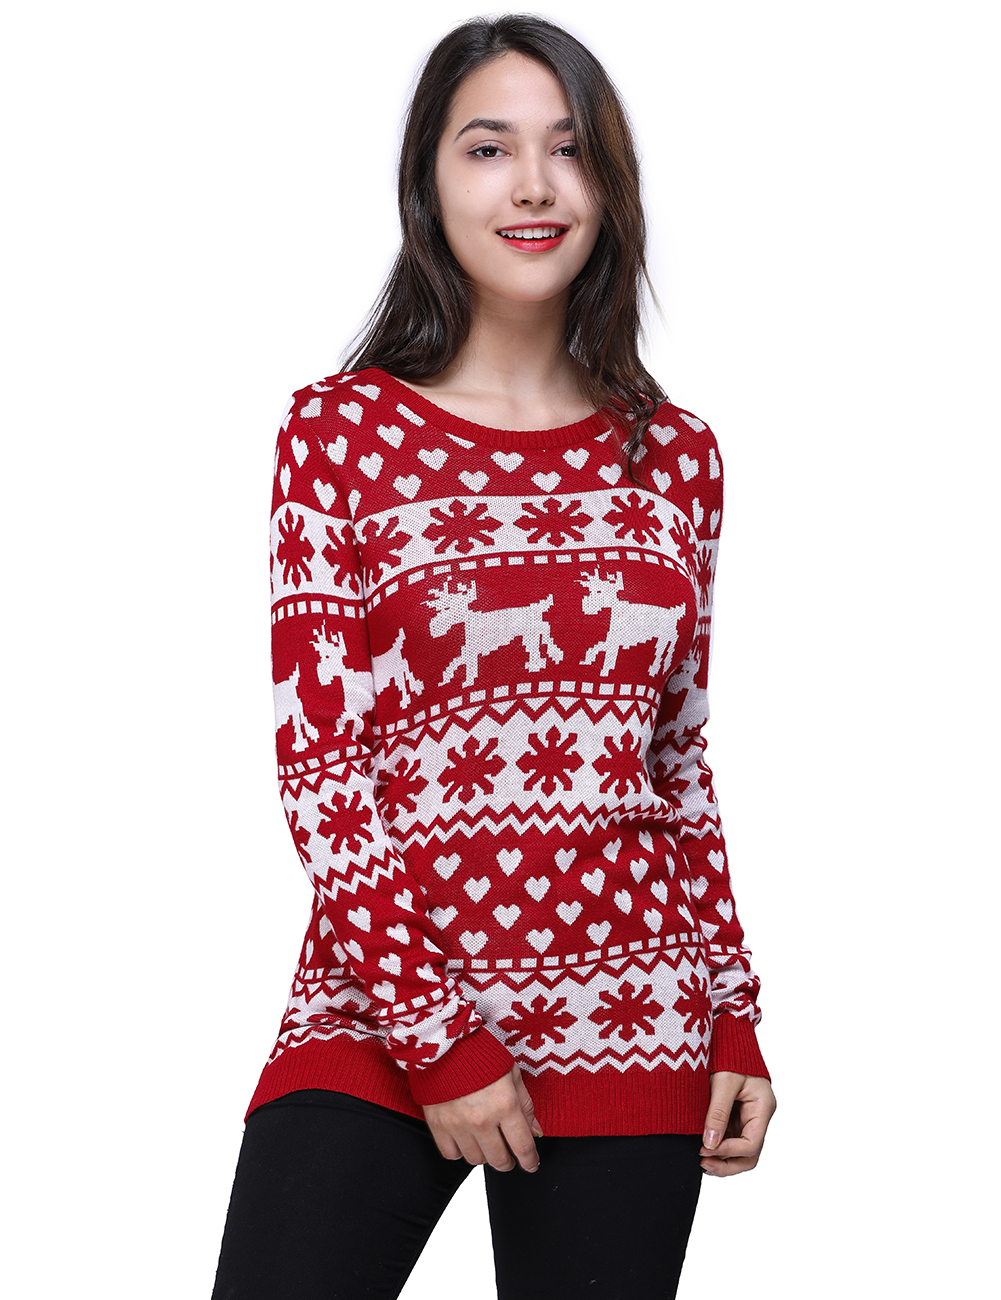 Best Latest Charm Excellent Hot Sale Funny Item Beautiful Christmas New Handmade women Available Accessories sweater knitting